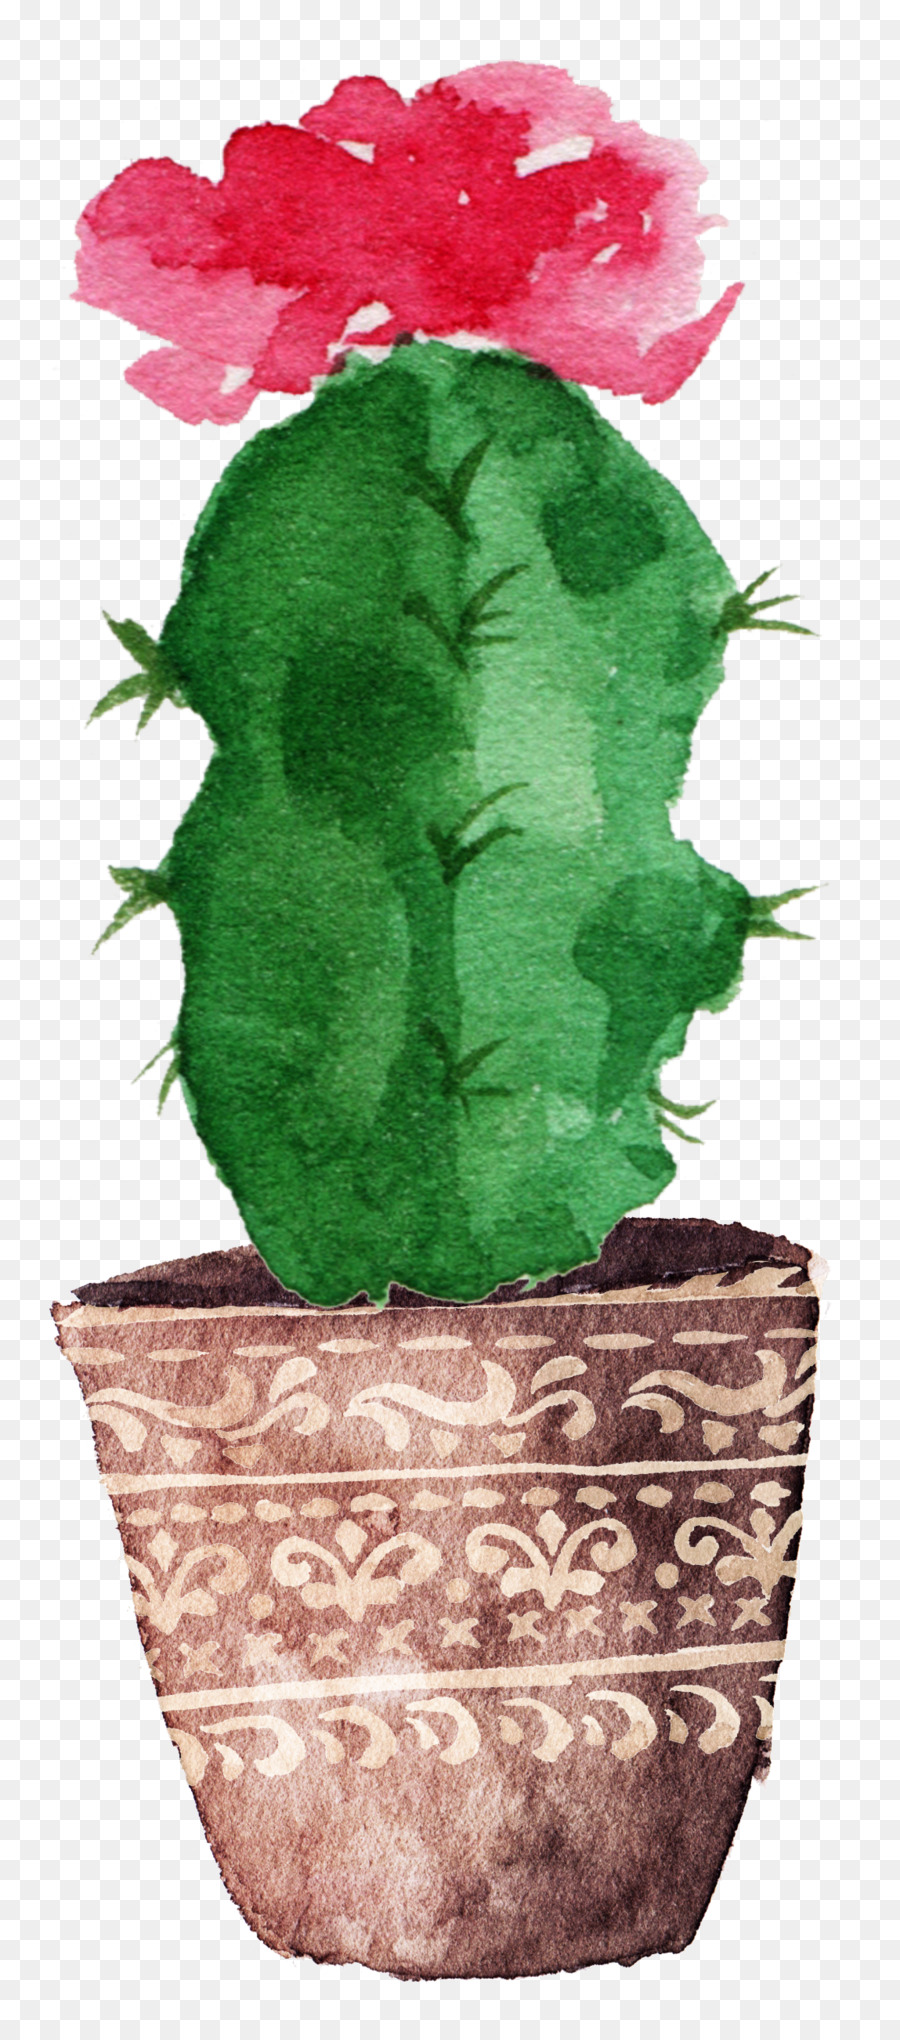 Cactaceae watercolor painting drawing canvas prickly pear cactus bloom png download 11492602 free transparent cactaceae png download